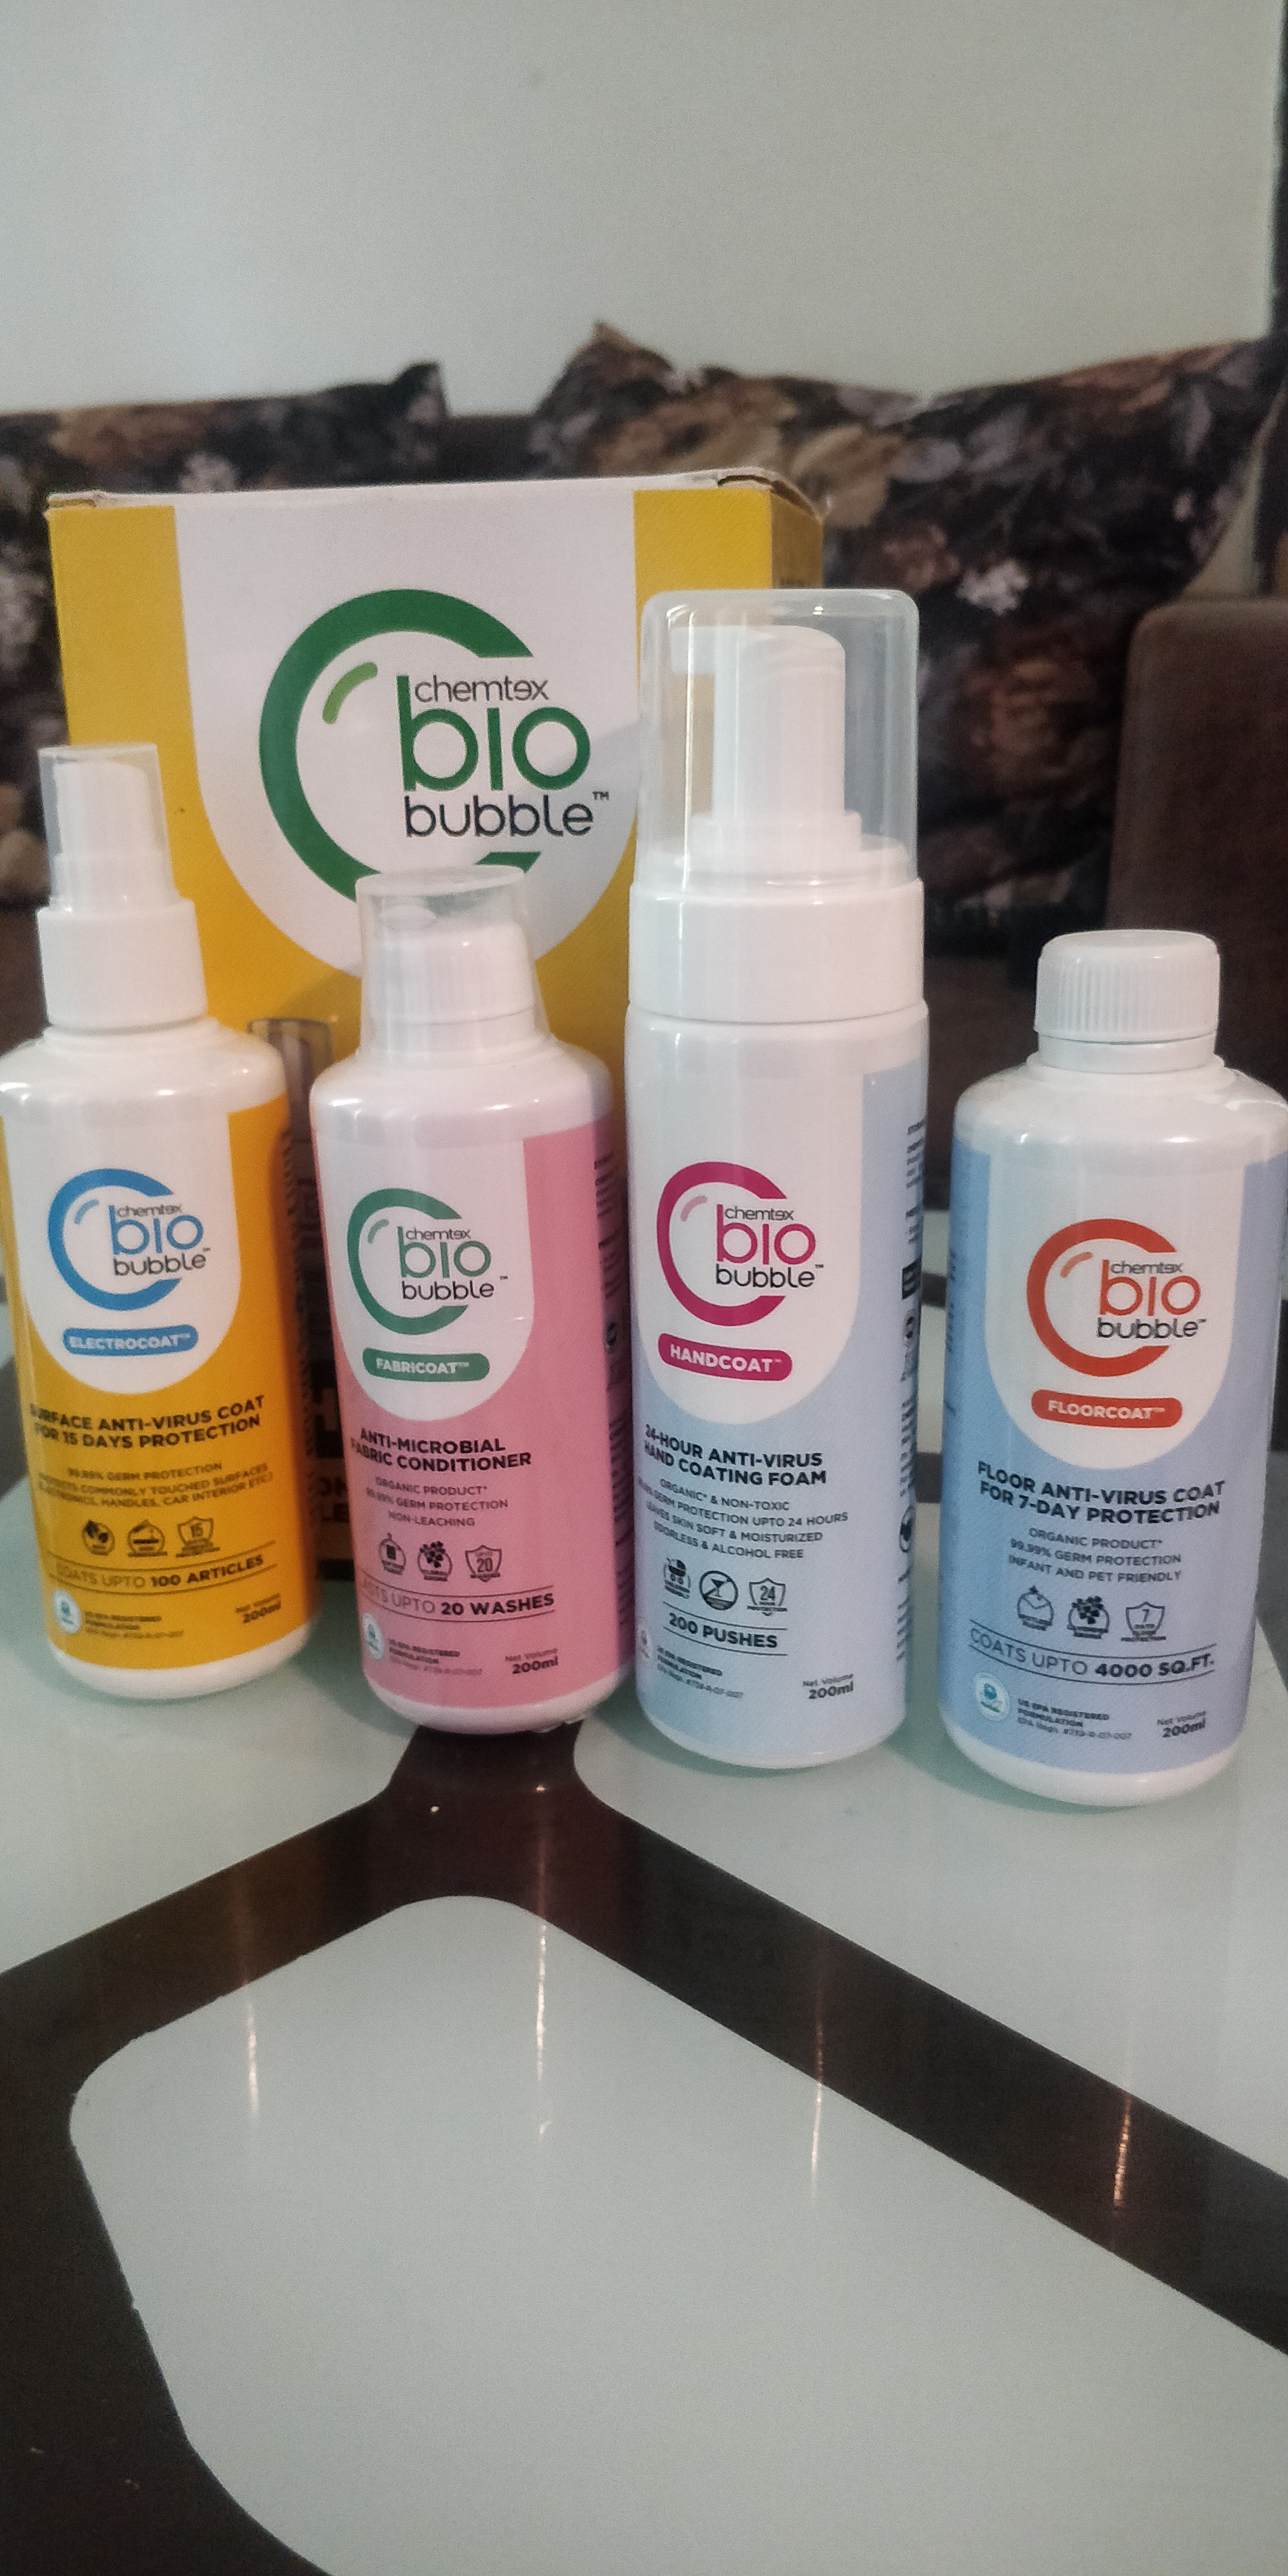 Chemtex Biobubble Home Kit-So far the best all round cleaning kit-By reshmark123